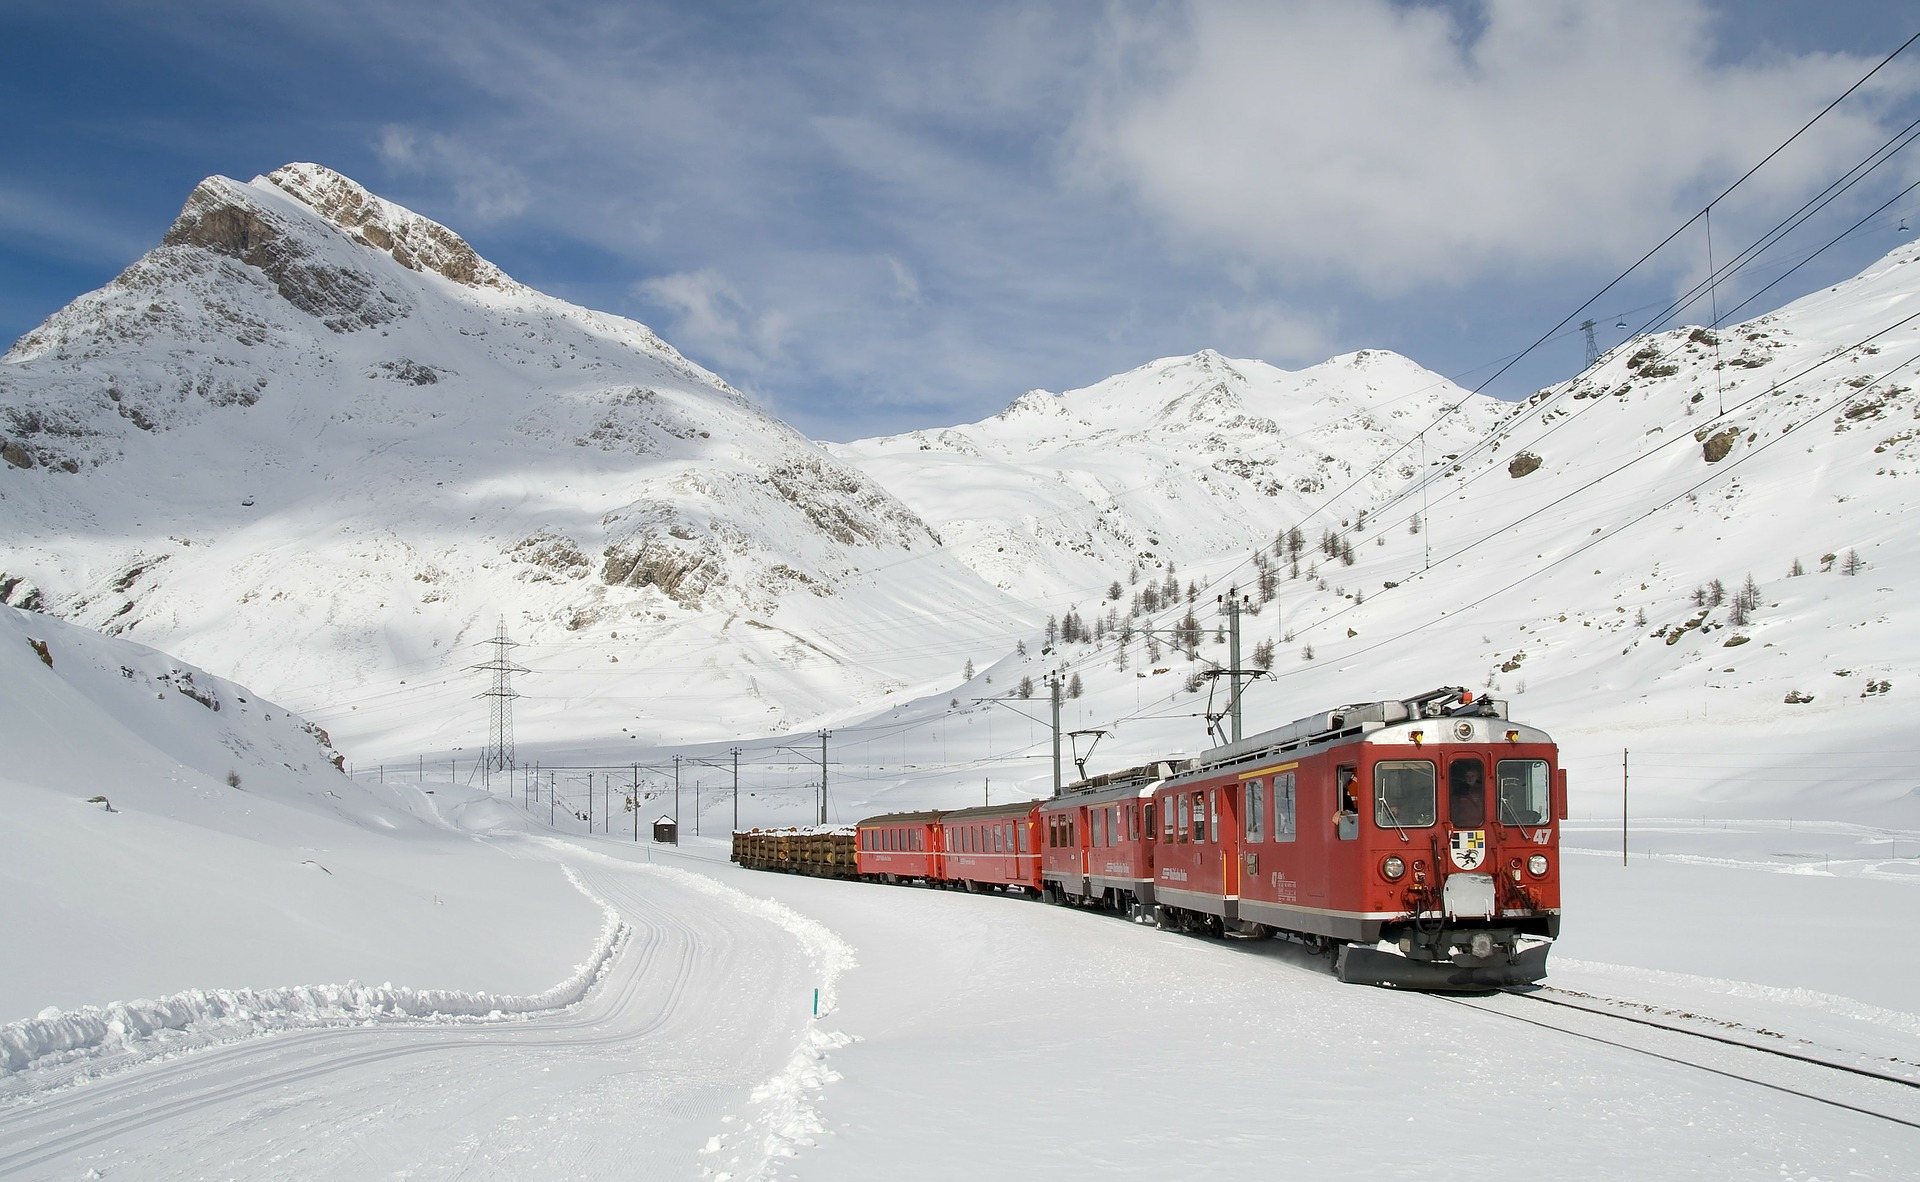 Railway Switzerland | Backpacking with Bacon | Travel Blog